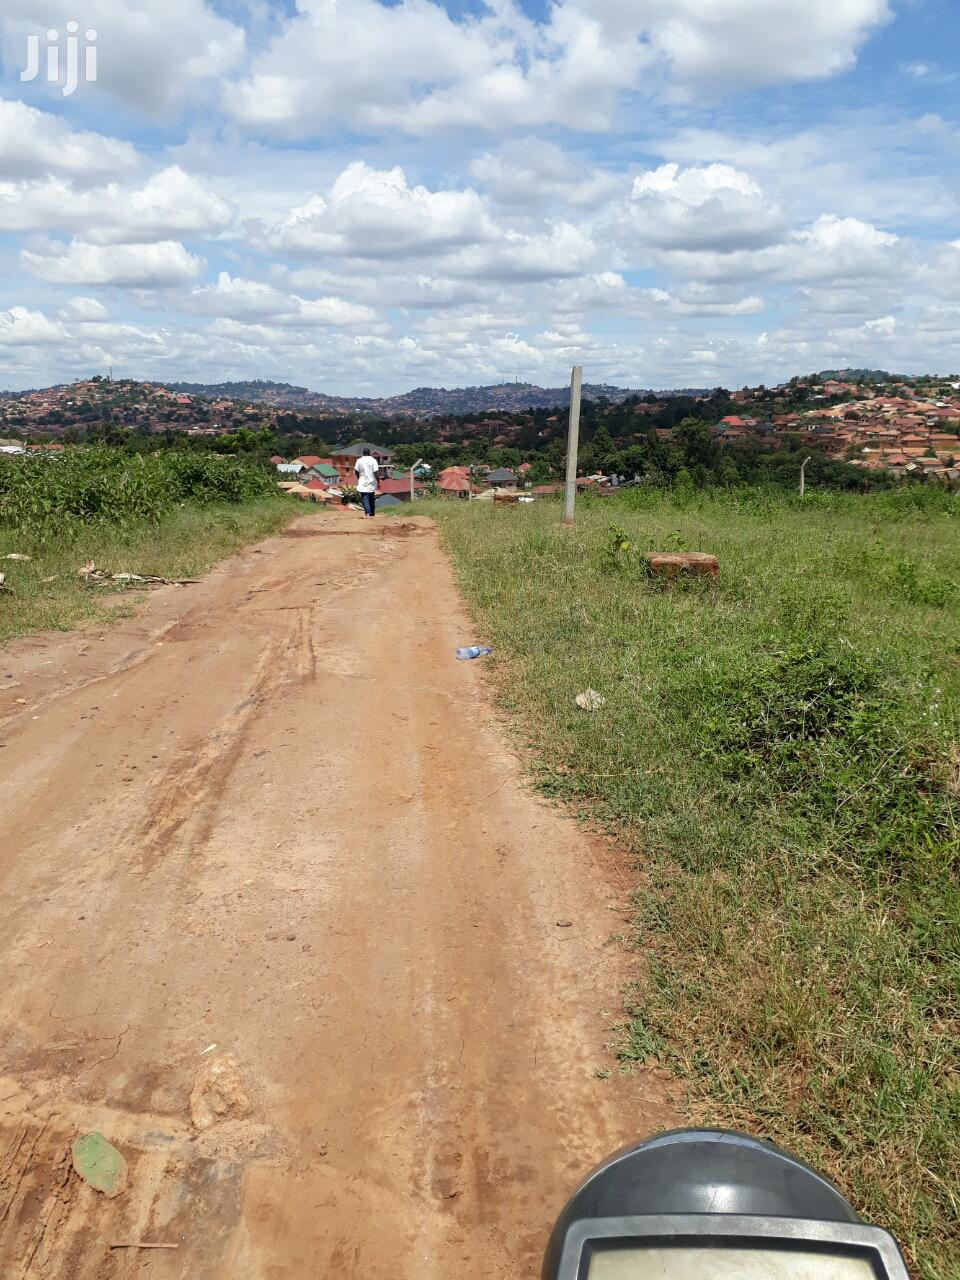 A New Estate at 4 Plots in Busabala Measuring 7 Decimals and Over | Land & Plots For Sale for sale in Kampala, Central Region, Uganda